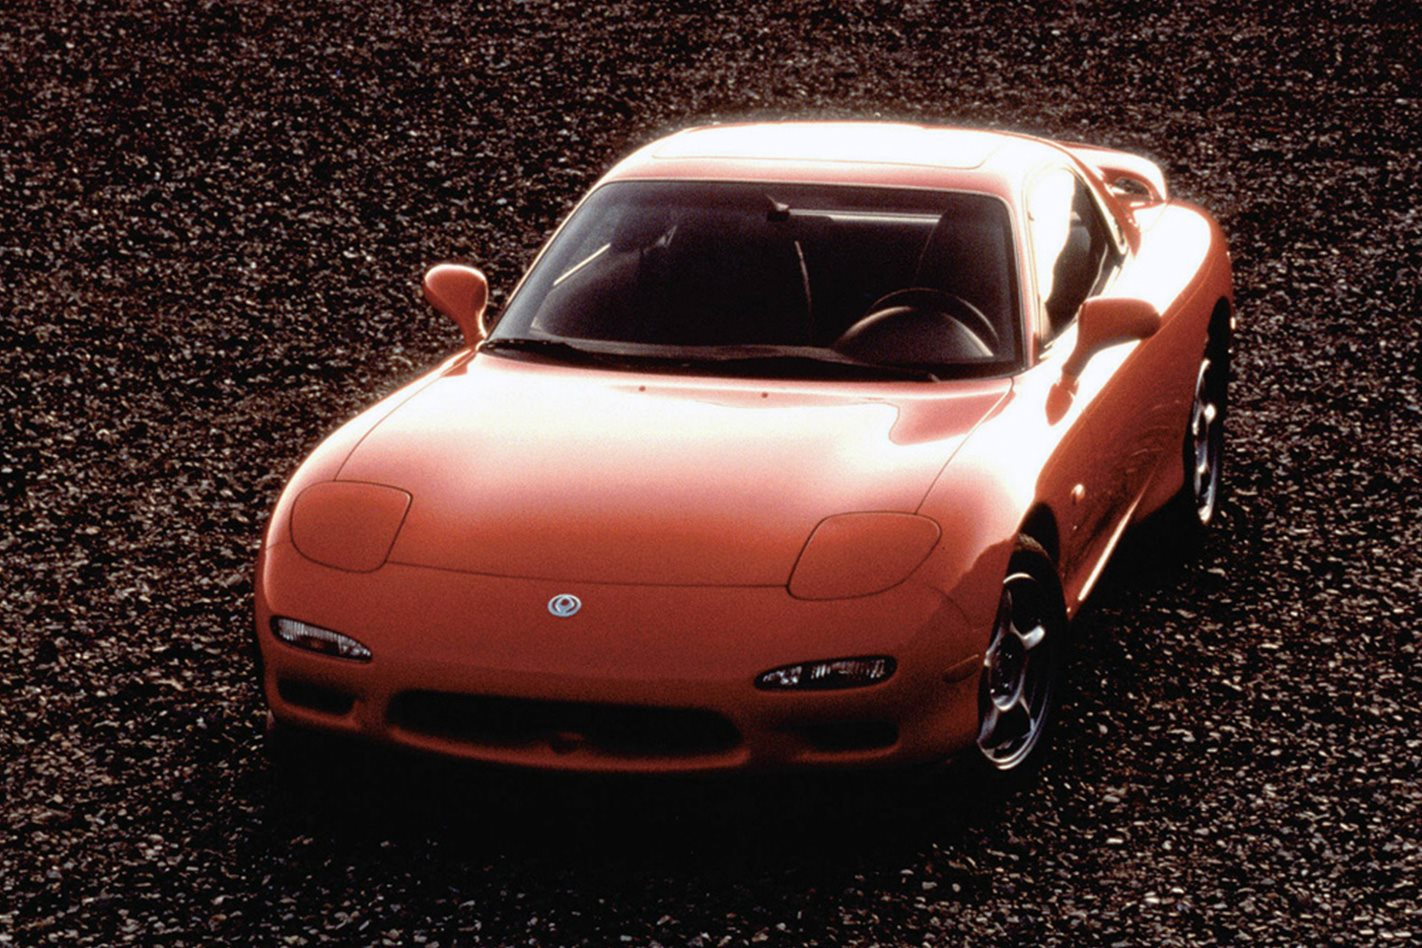 Mazda Rx 7 Evolution Of The Badge 1992 Rx7 Engine Staggeringly Twin Rotor Still Hadnt Grown Beyond 13 Litres Which Meant Final Could Brag An Output 158kw Per Litre